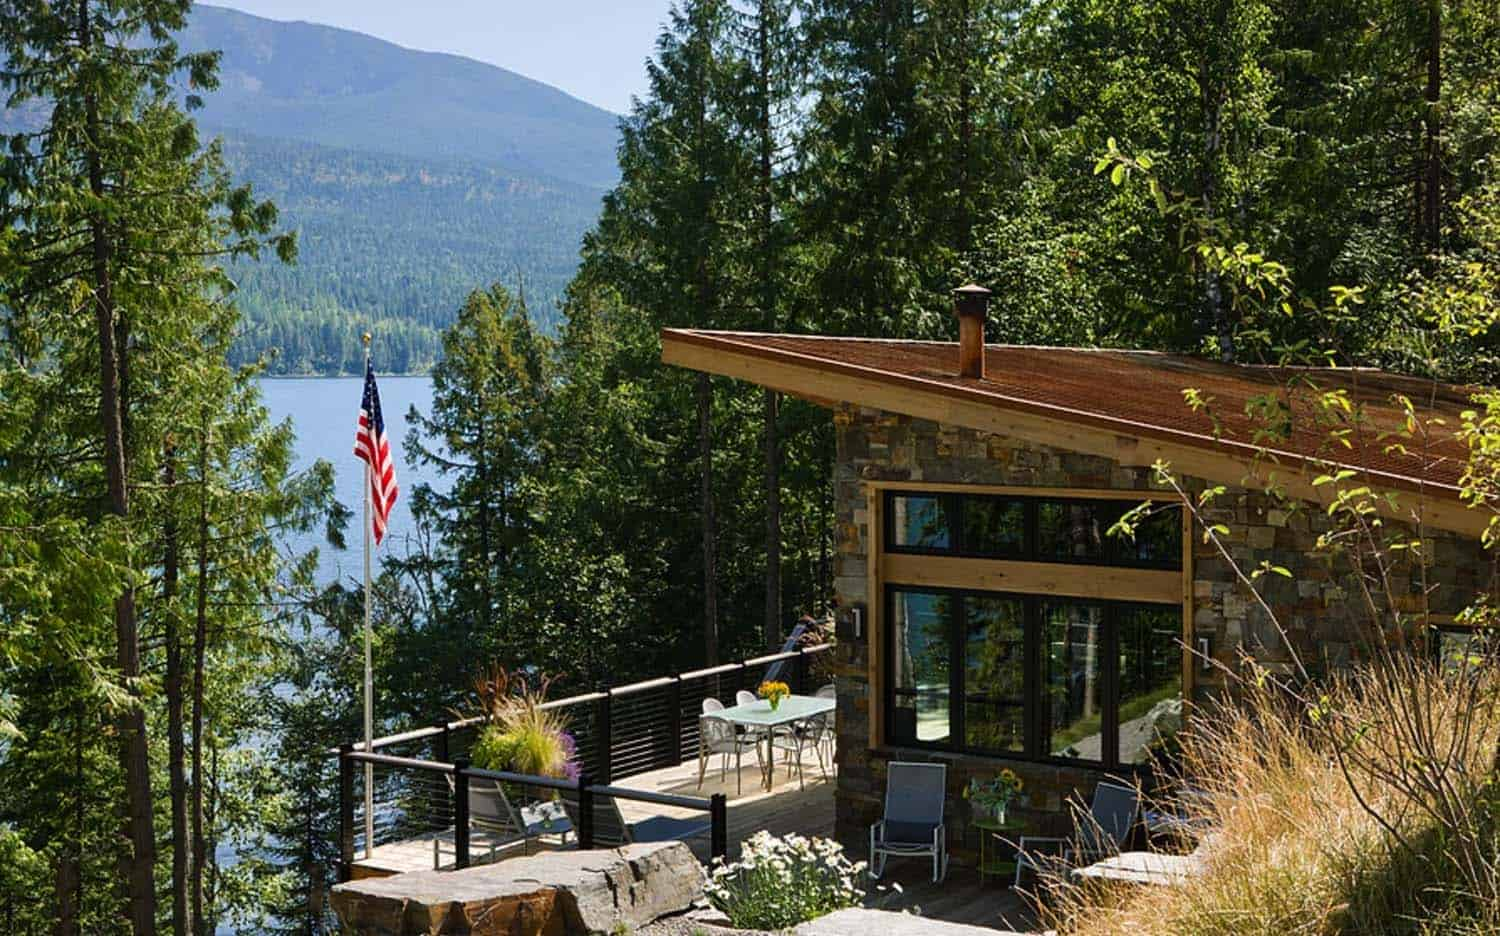 Rustic Lake House-Reid Smith Architects-02-1 Kindesign